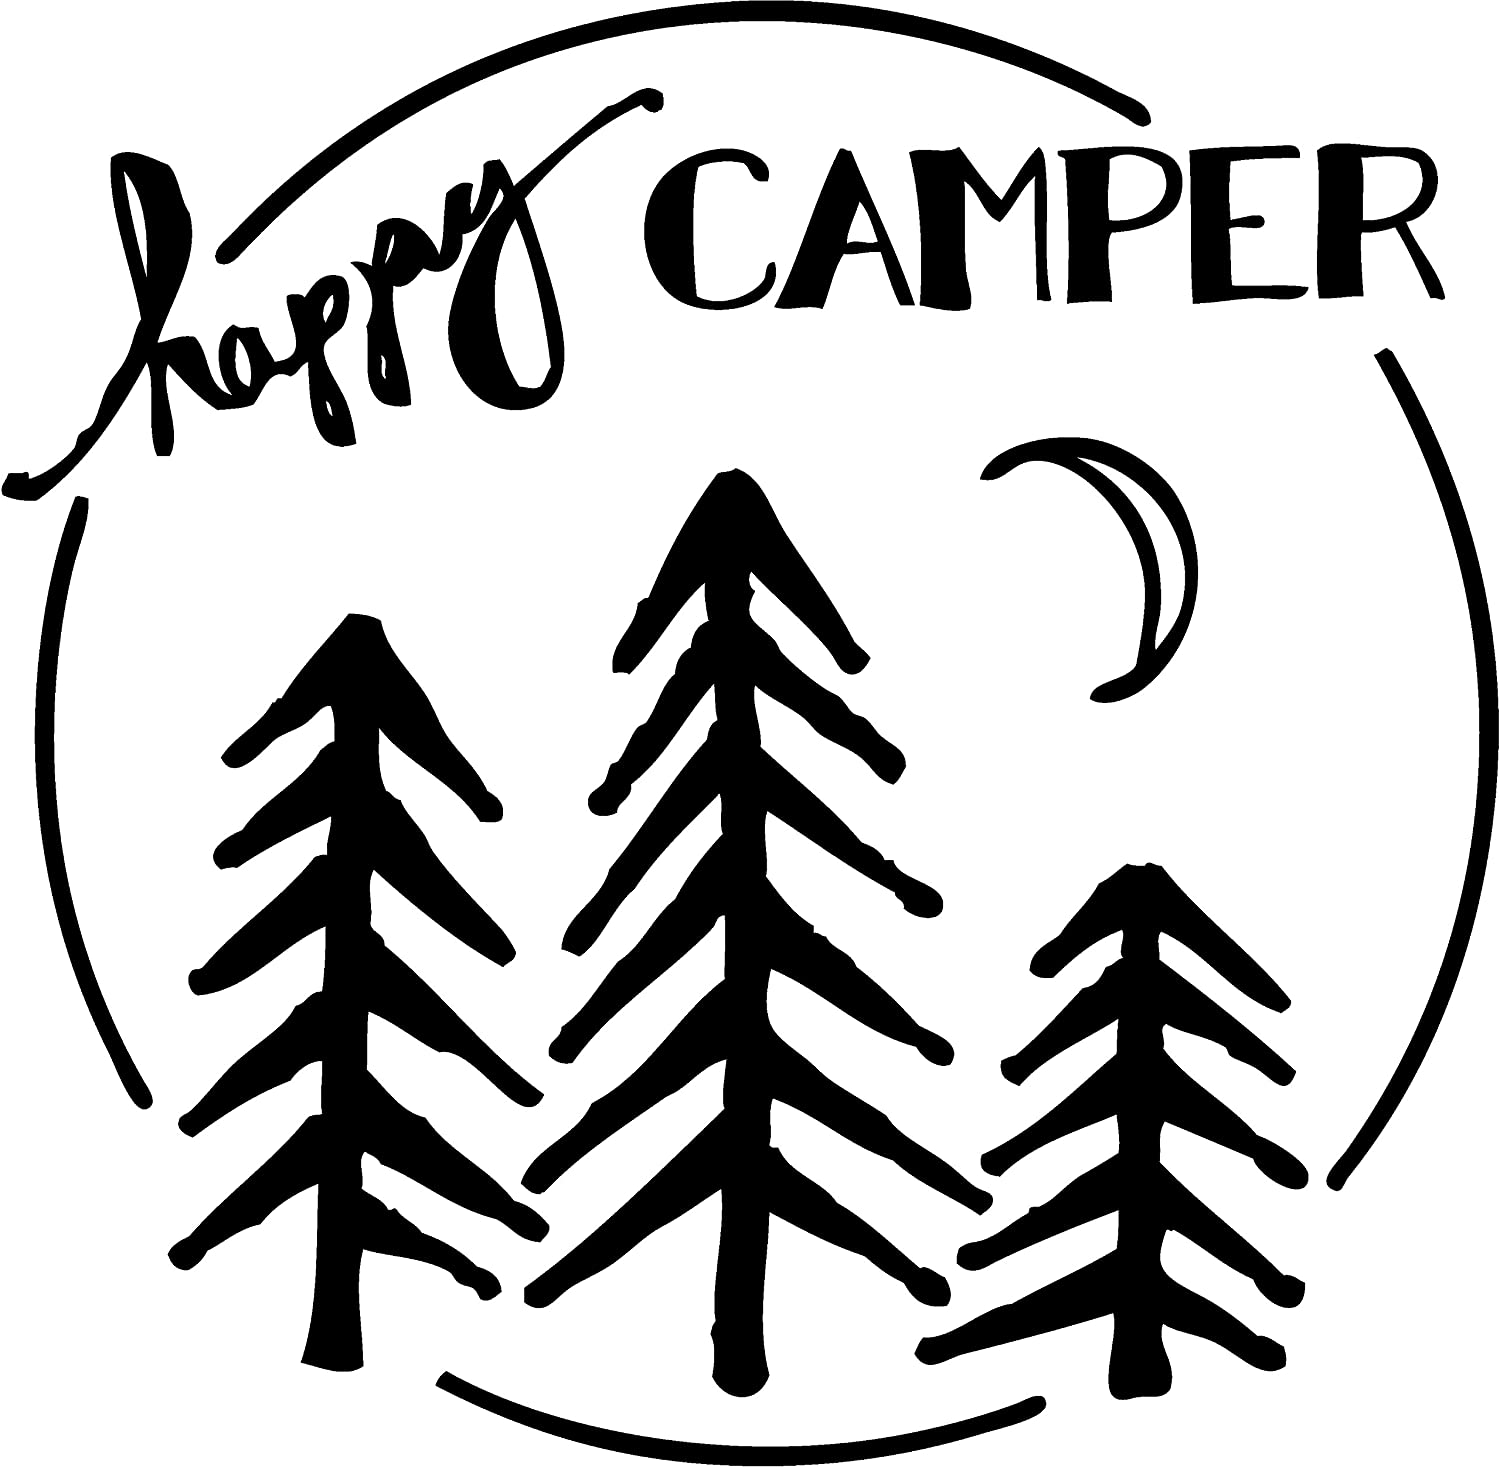 TDT Printing & Custom Decals The Happy Camper Vinyl Decal Sticker for Car or Truck Windows, Laptops etc. (Gray)